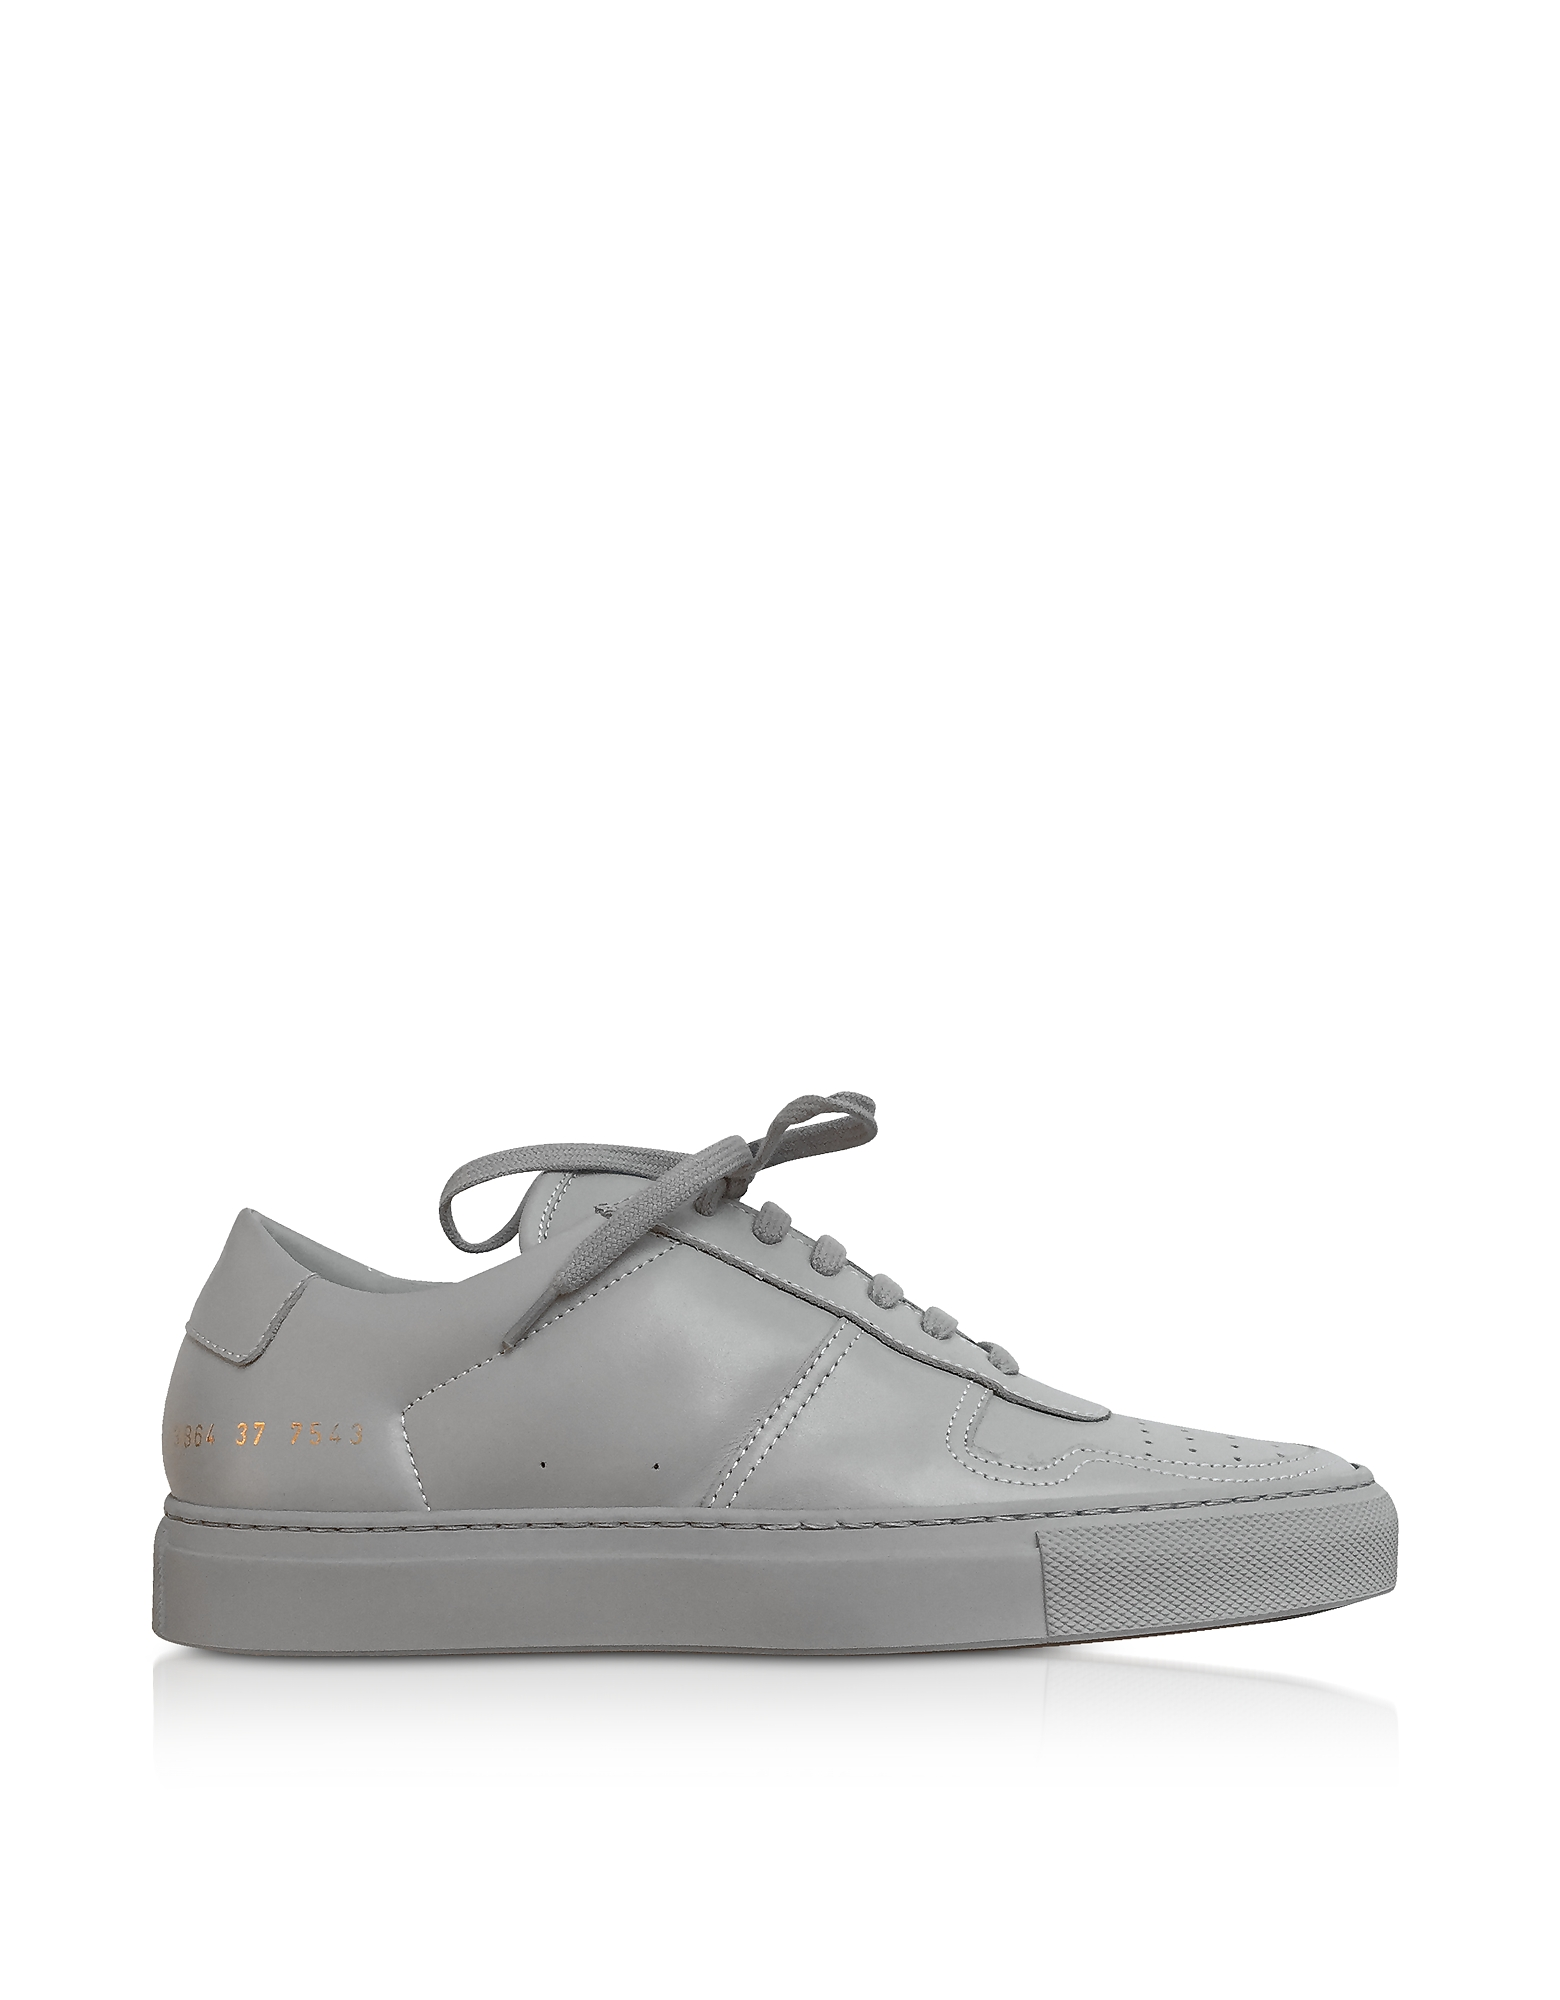 Bball Sneakers Low Top Donna in Pelle Gray